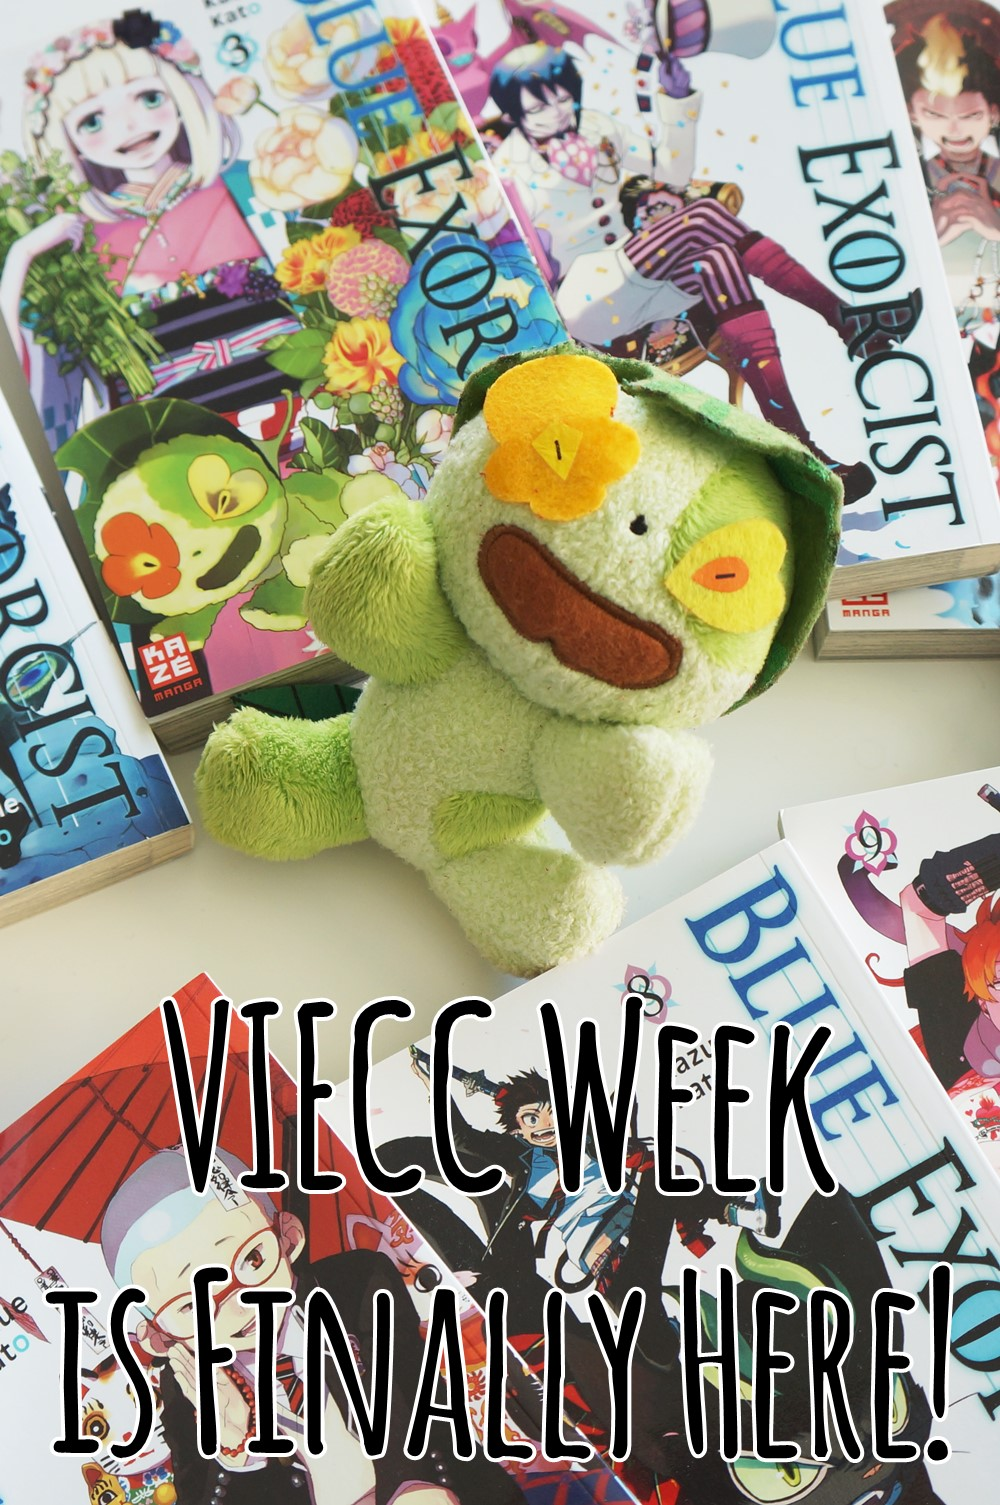 Vienna Comic Con Week is Finally Here!